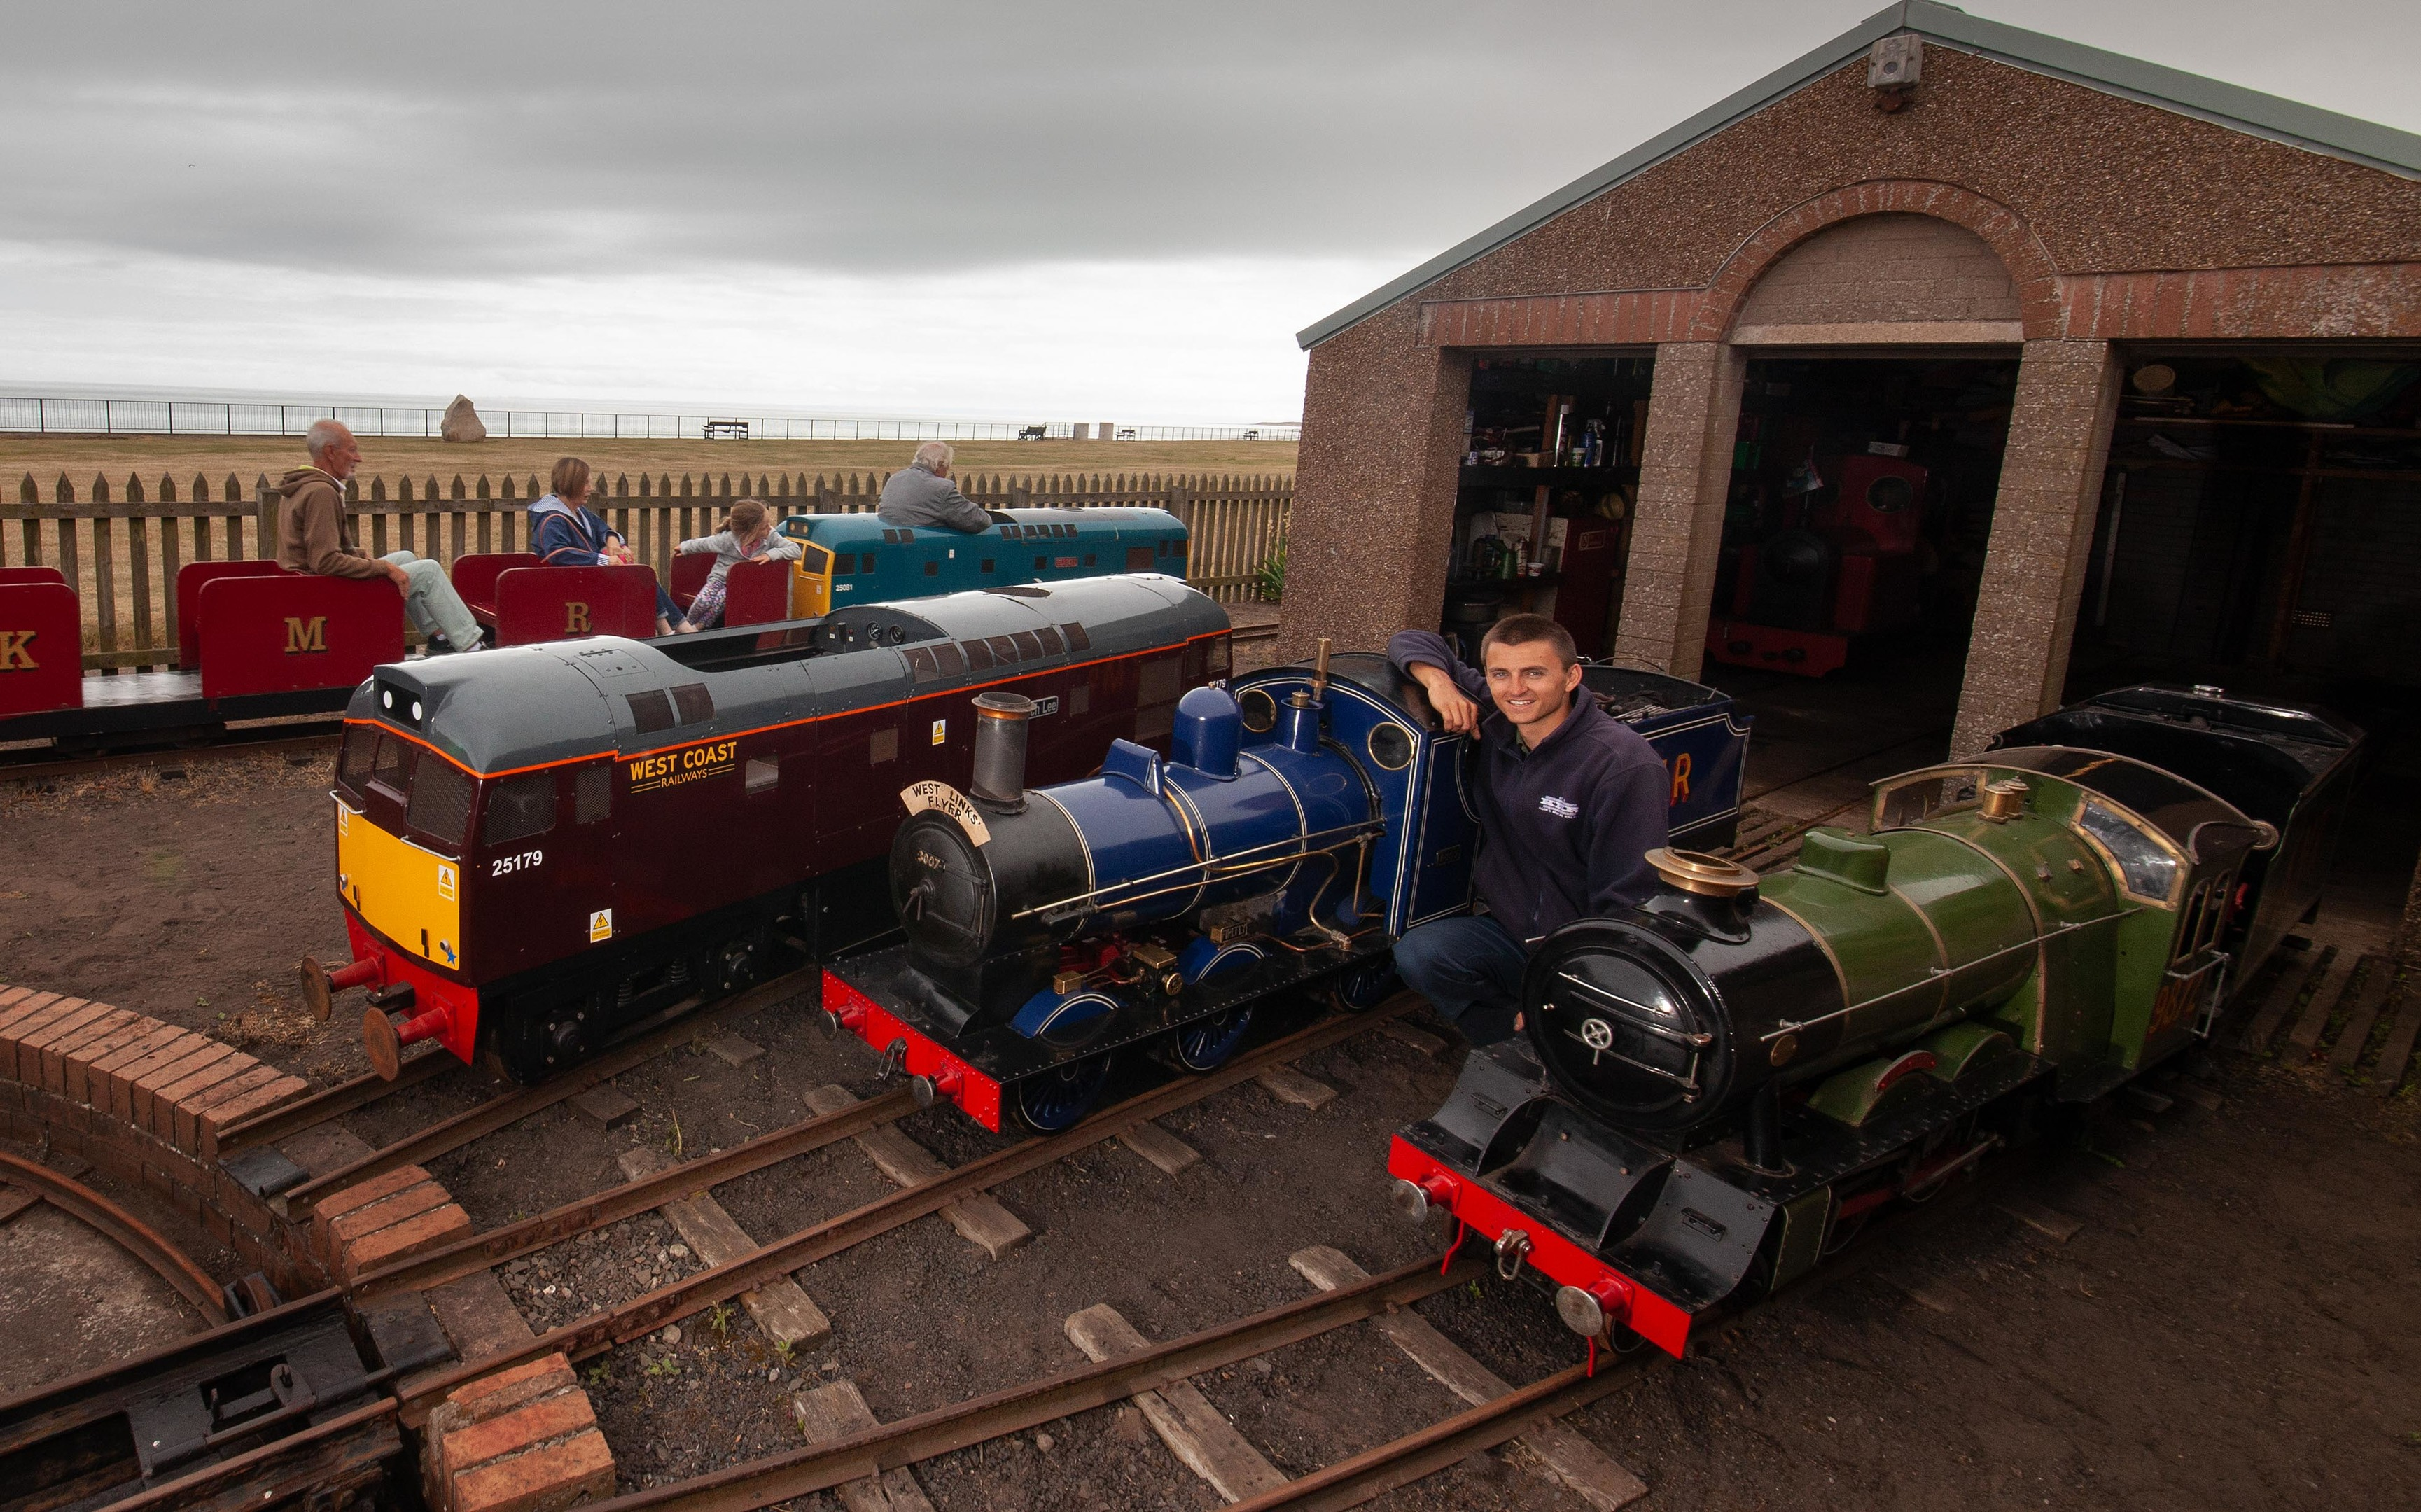 Scotland's oldest miniature railway opens for the summer season with special steam trains among the attractions. As always, it will be the highlight of summer season and kids will be queuing up as usual to ride on John's trains which have been going since 1935.  Pic shows John Kerr, owner.  Pic Paul Reid